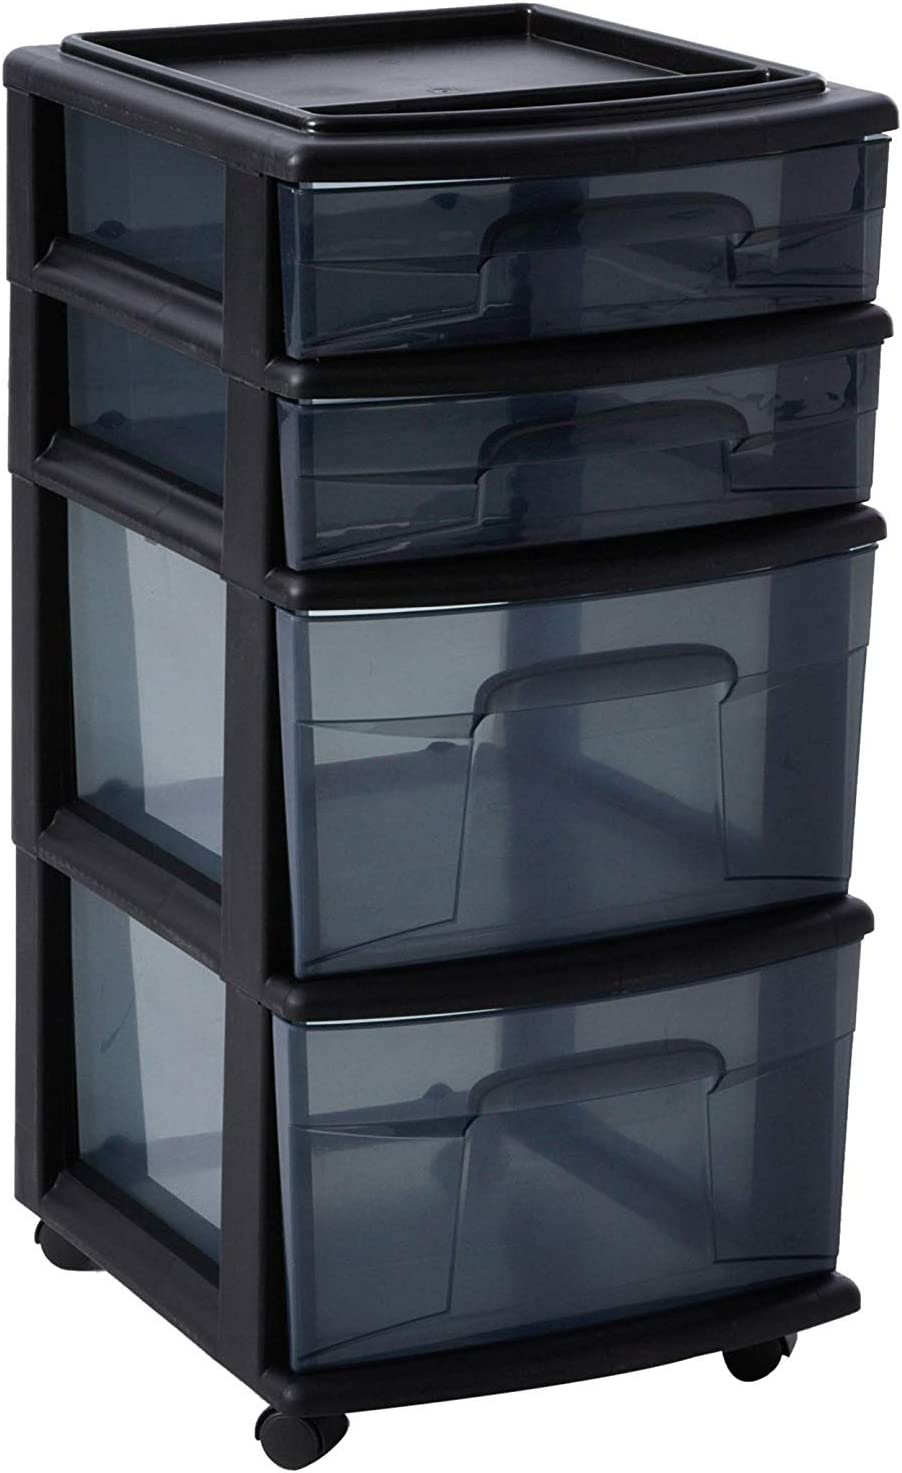 HOMZ Plastic 4 Drawer Medium Cart, Black Frame with Smoke Tint Drawers, Casters Included, Set of 1: Home & Kitchen